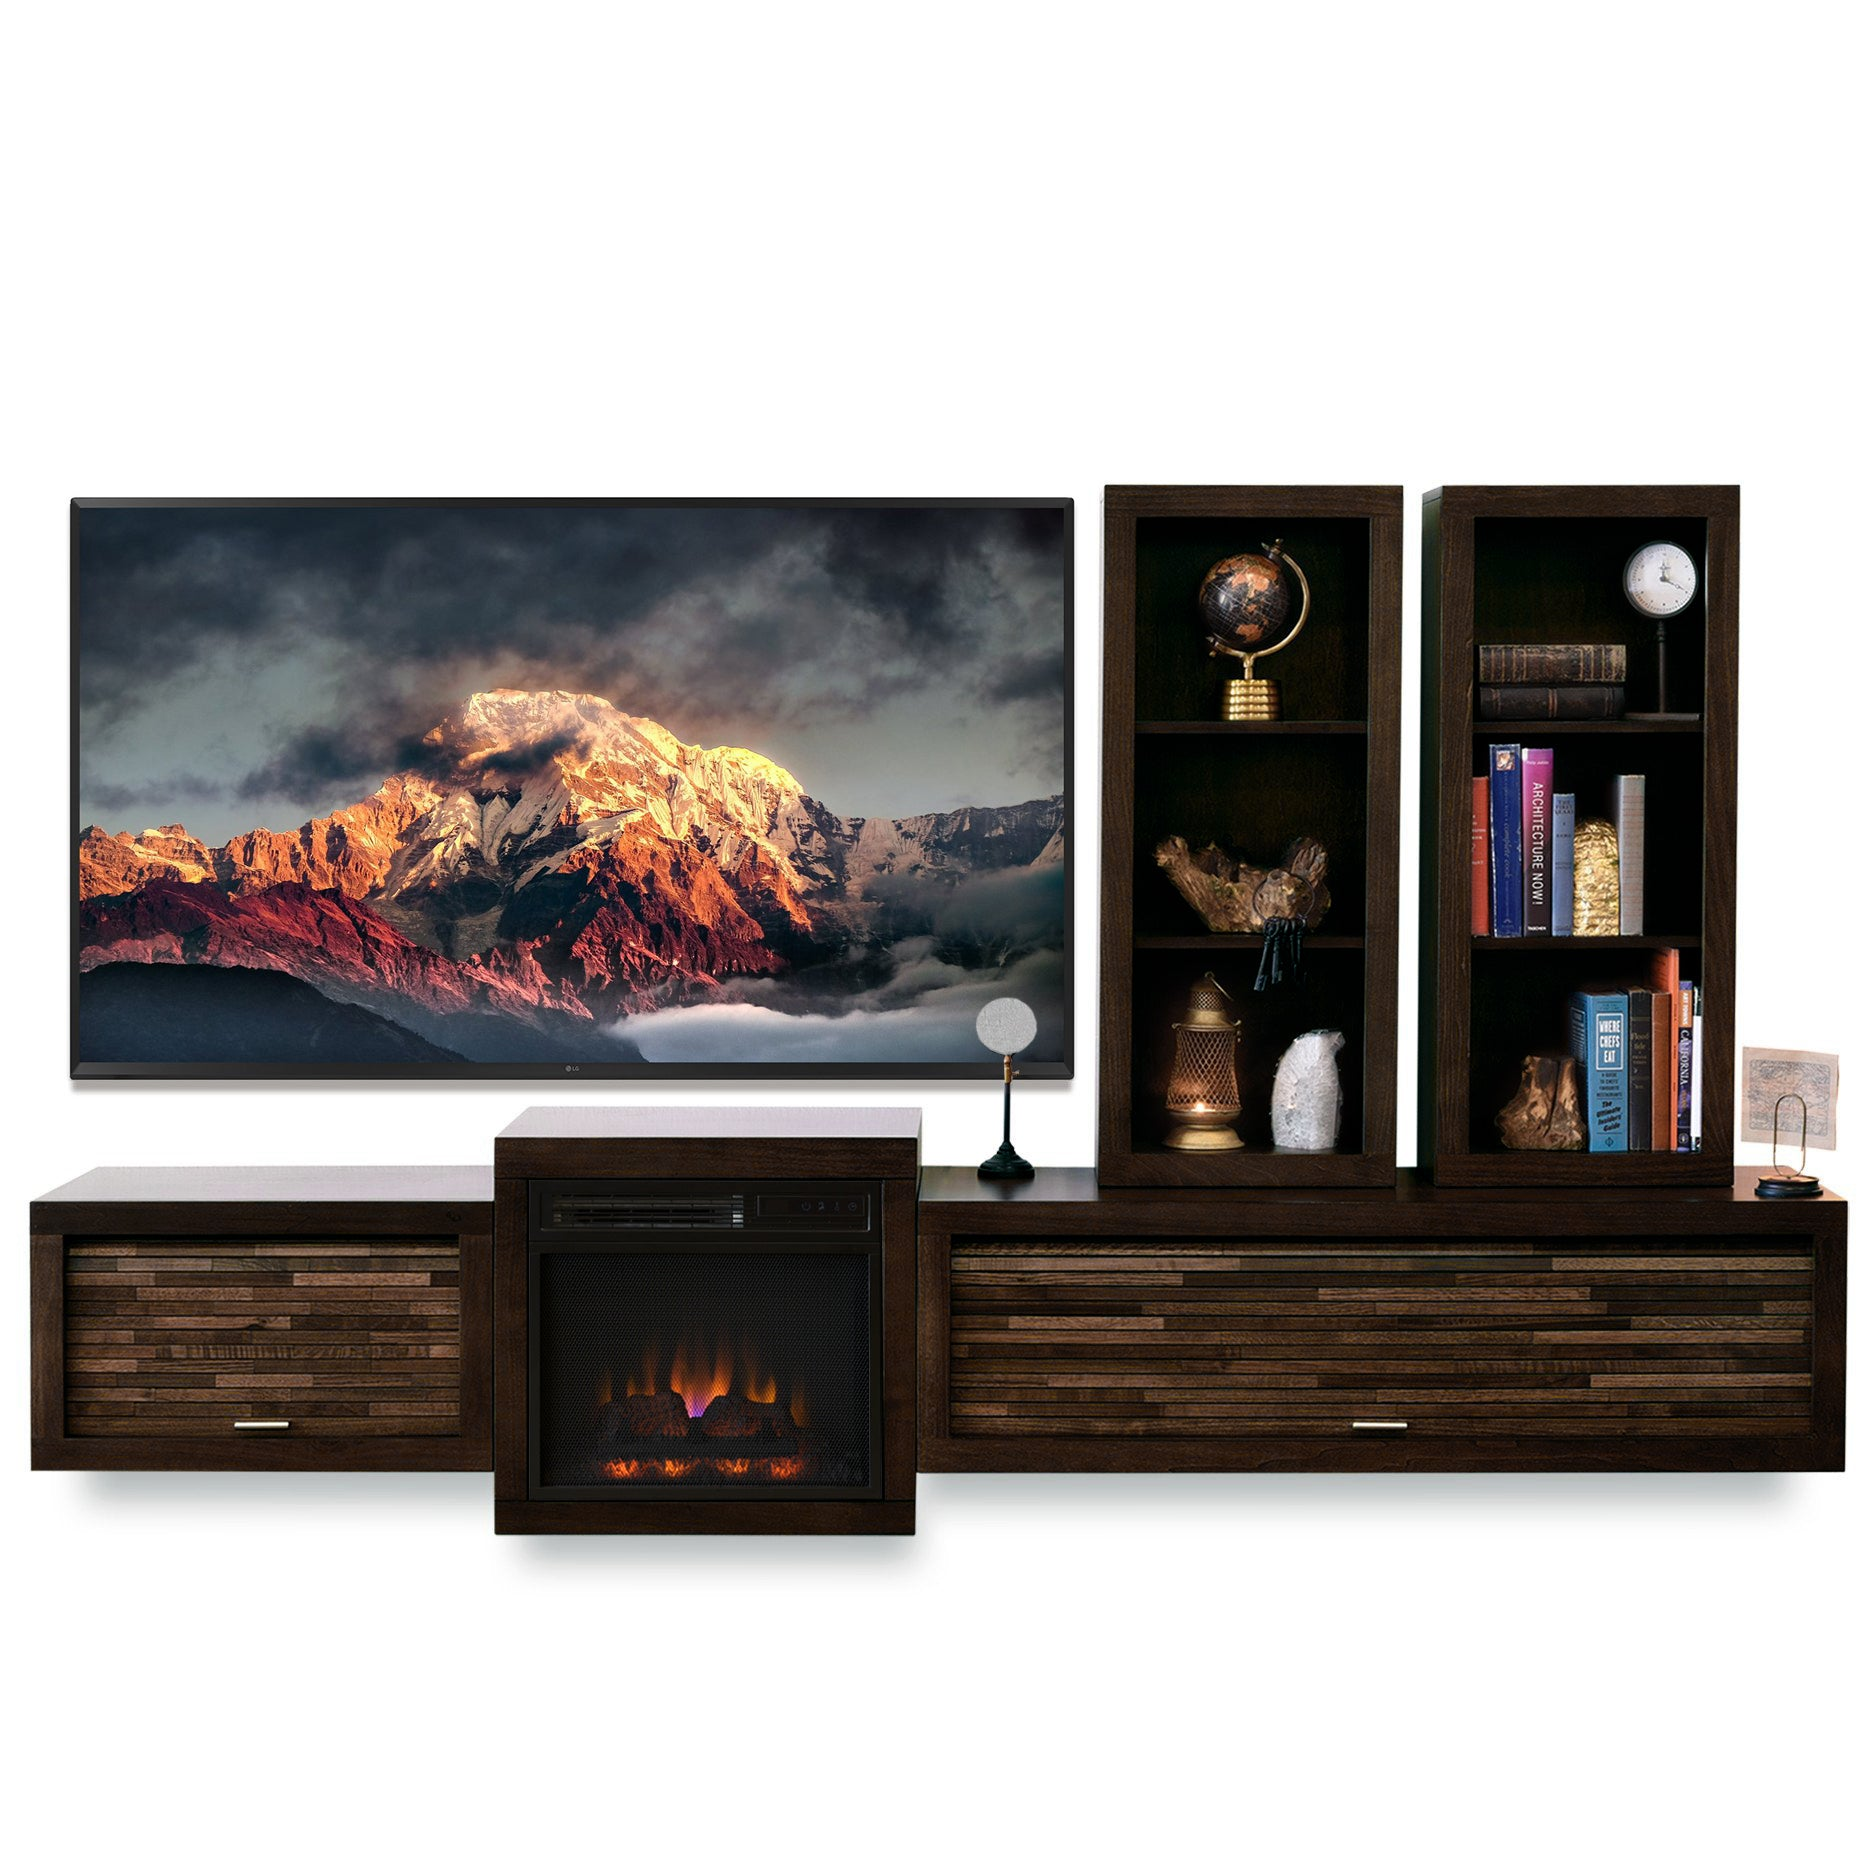 Fireplace TV Stand Floating Entertainment Center Console - ECO GEO Espresso